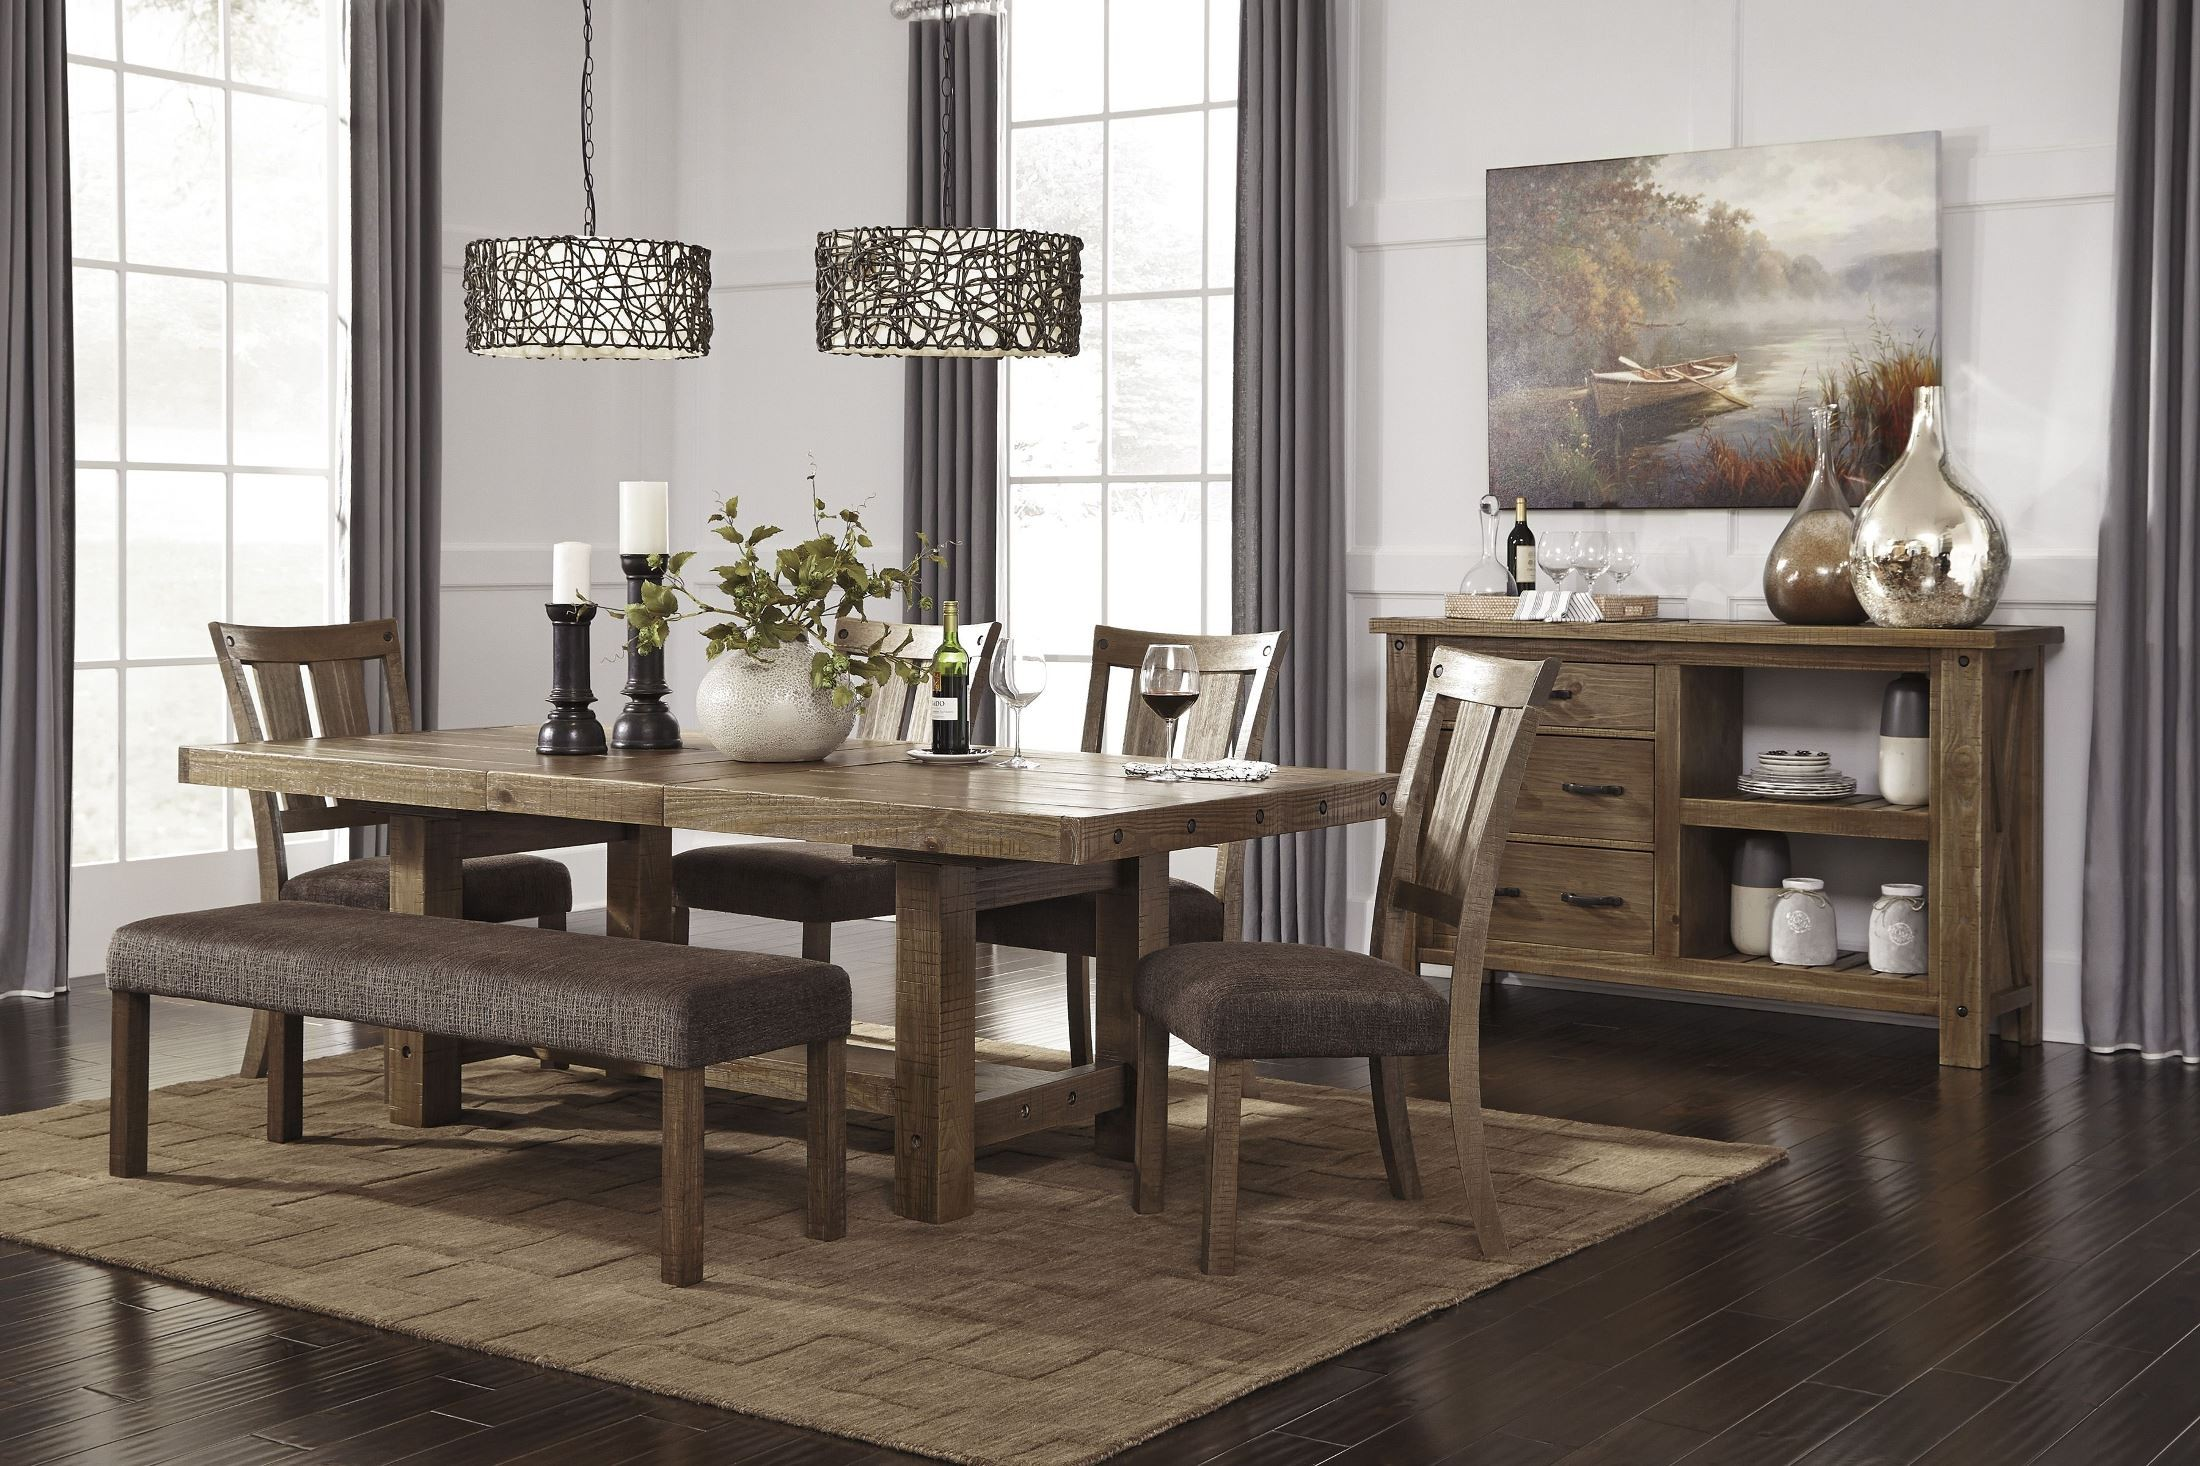 tamilo gray brown rectangular extendable dining room set from ashley